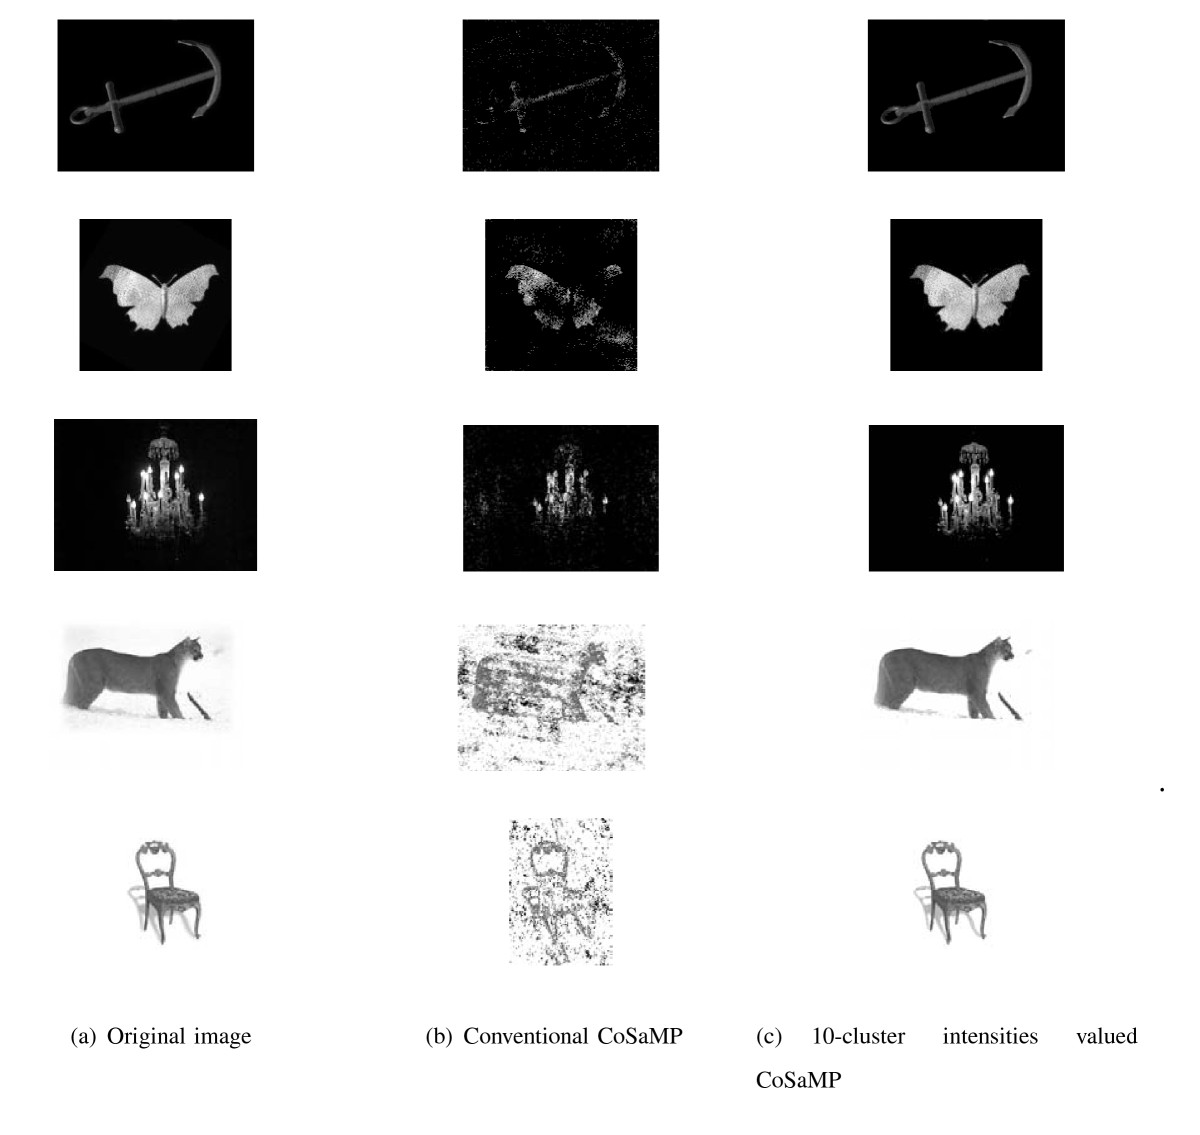 http://static-content.springer.com/image/art%3A10.1186%2F1687-6180-2011-75/MediaObjects/13634_2011_Article_73_Fig6_HTML.jpg